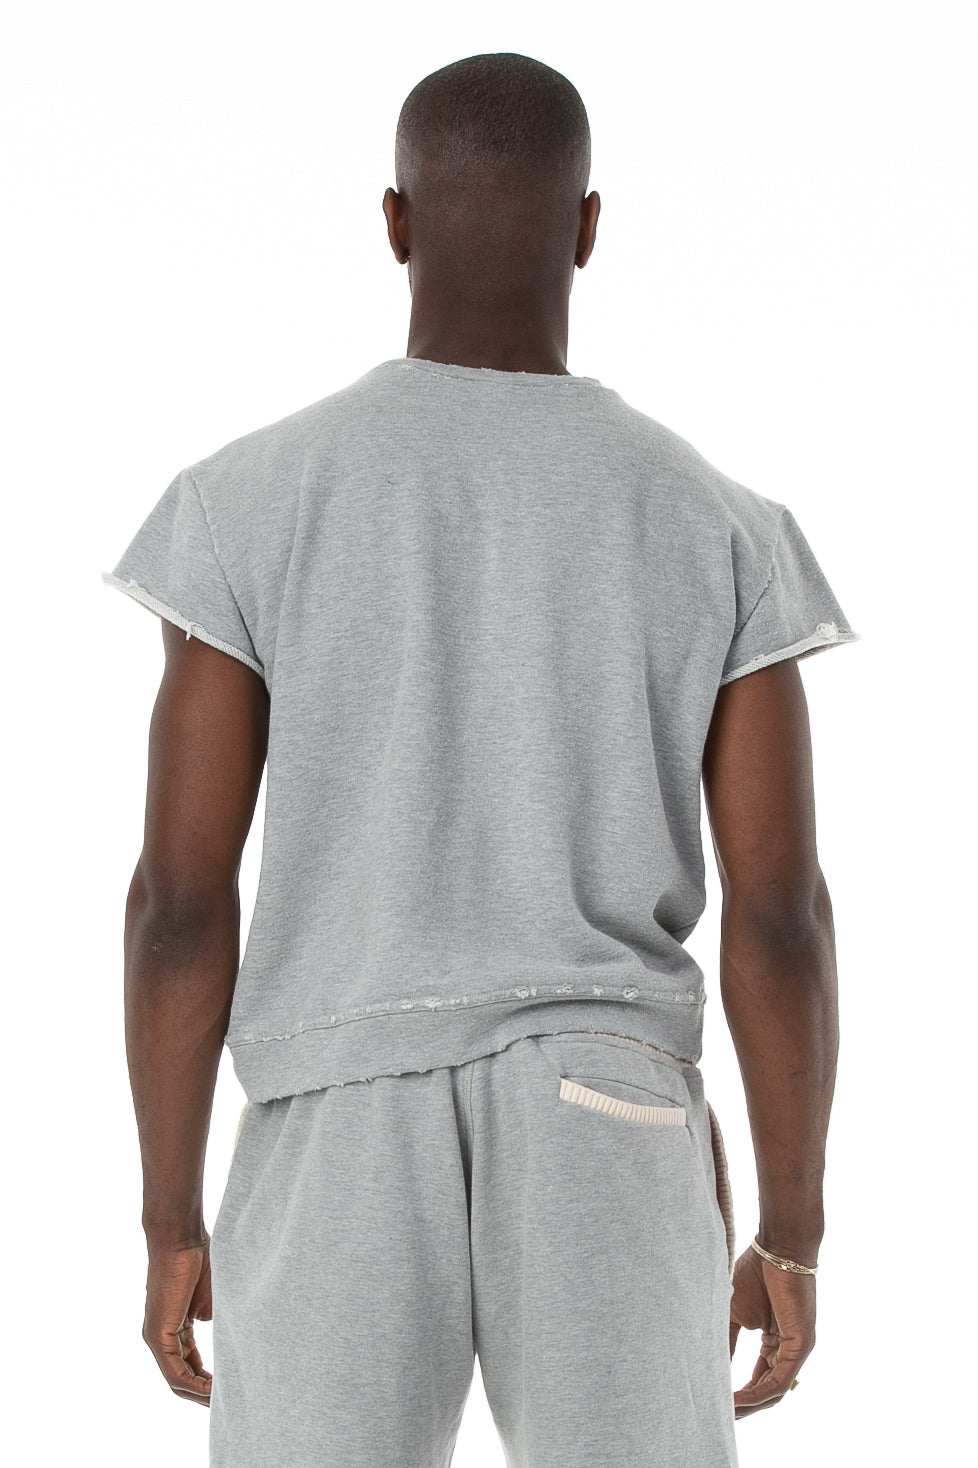 Backside of male model wearing Terry Cutoff in Heather Grey